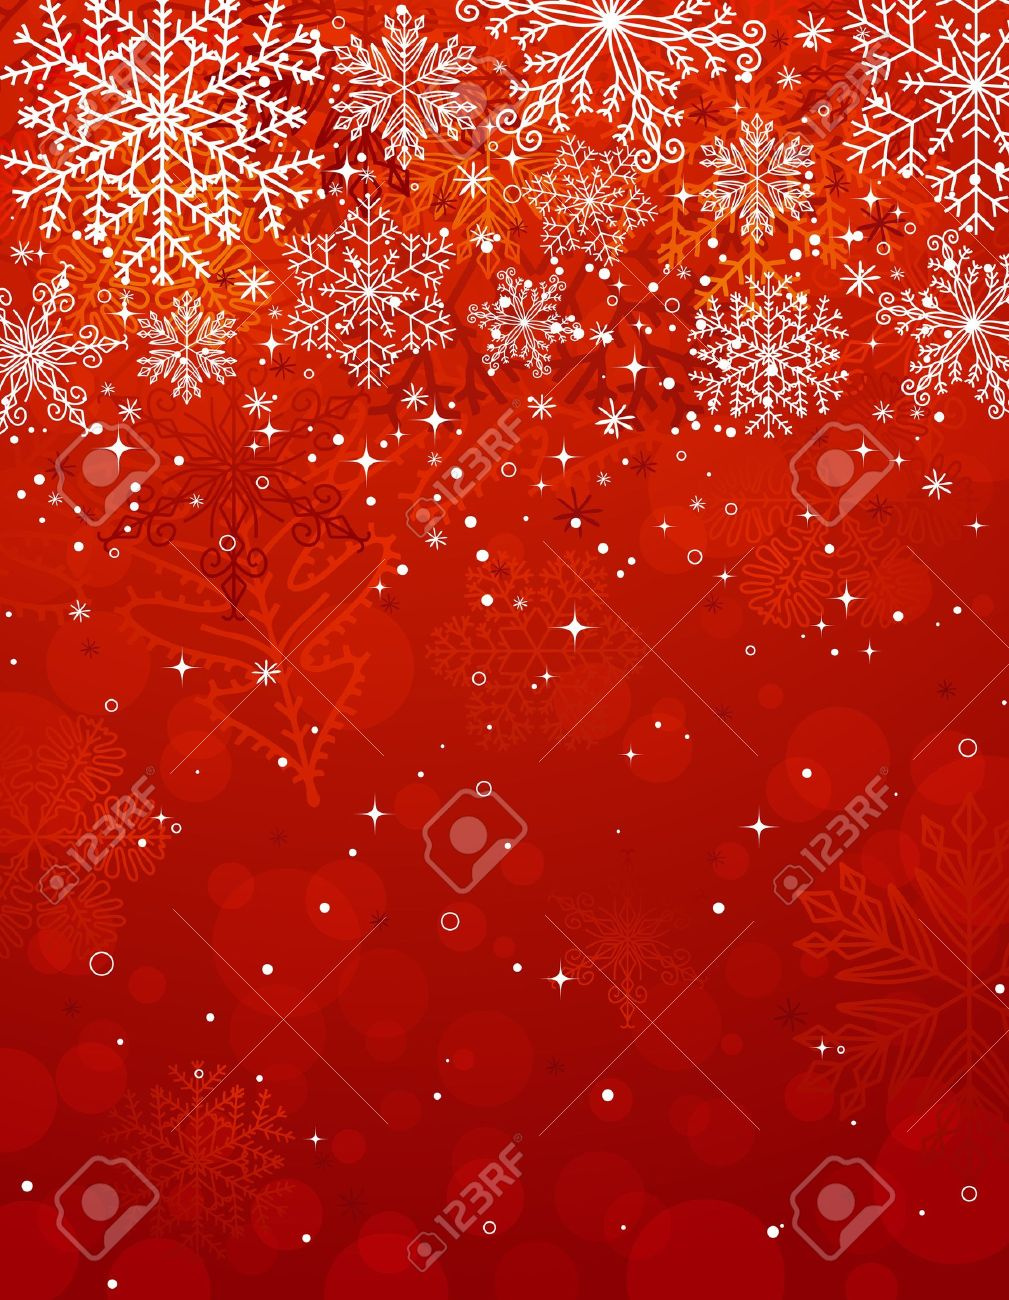 Red Christmas Background With Snowflakes Royalty Free Cliparts ...